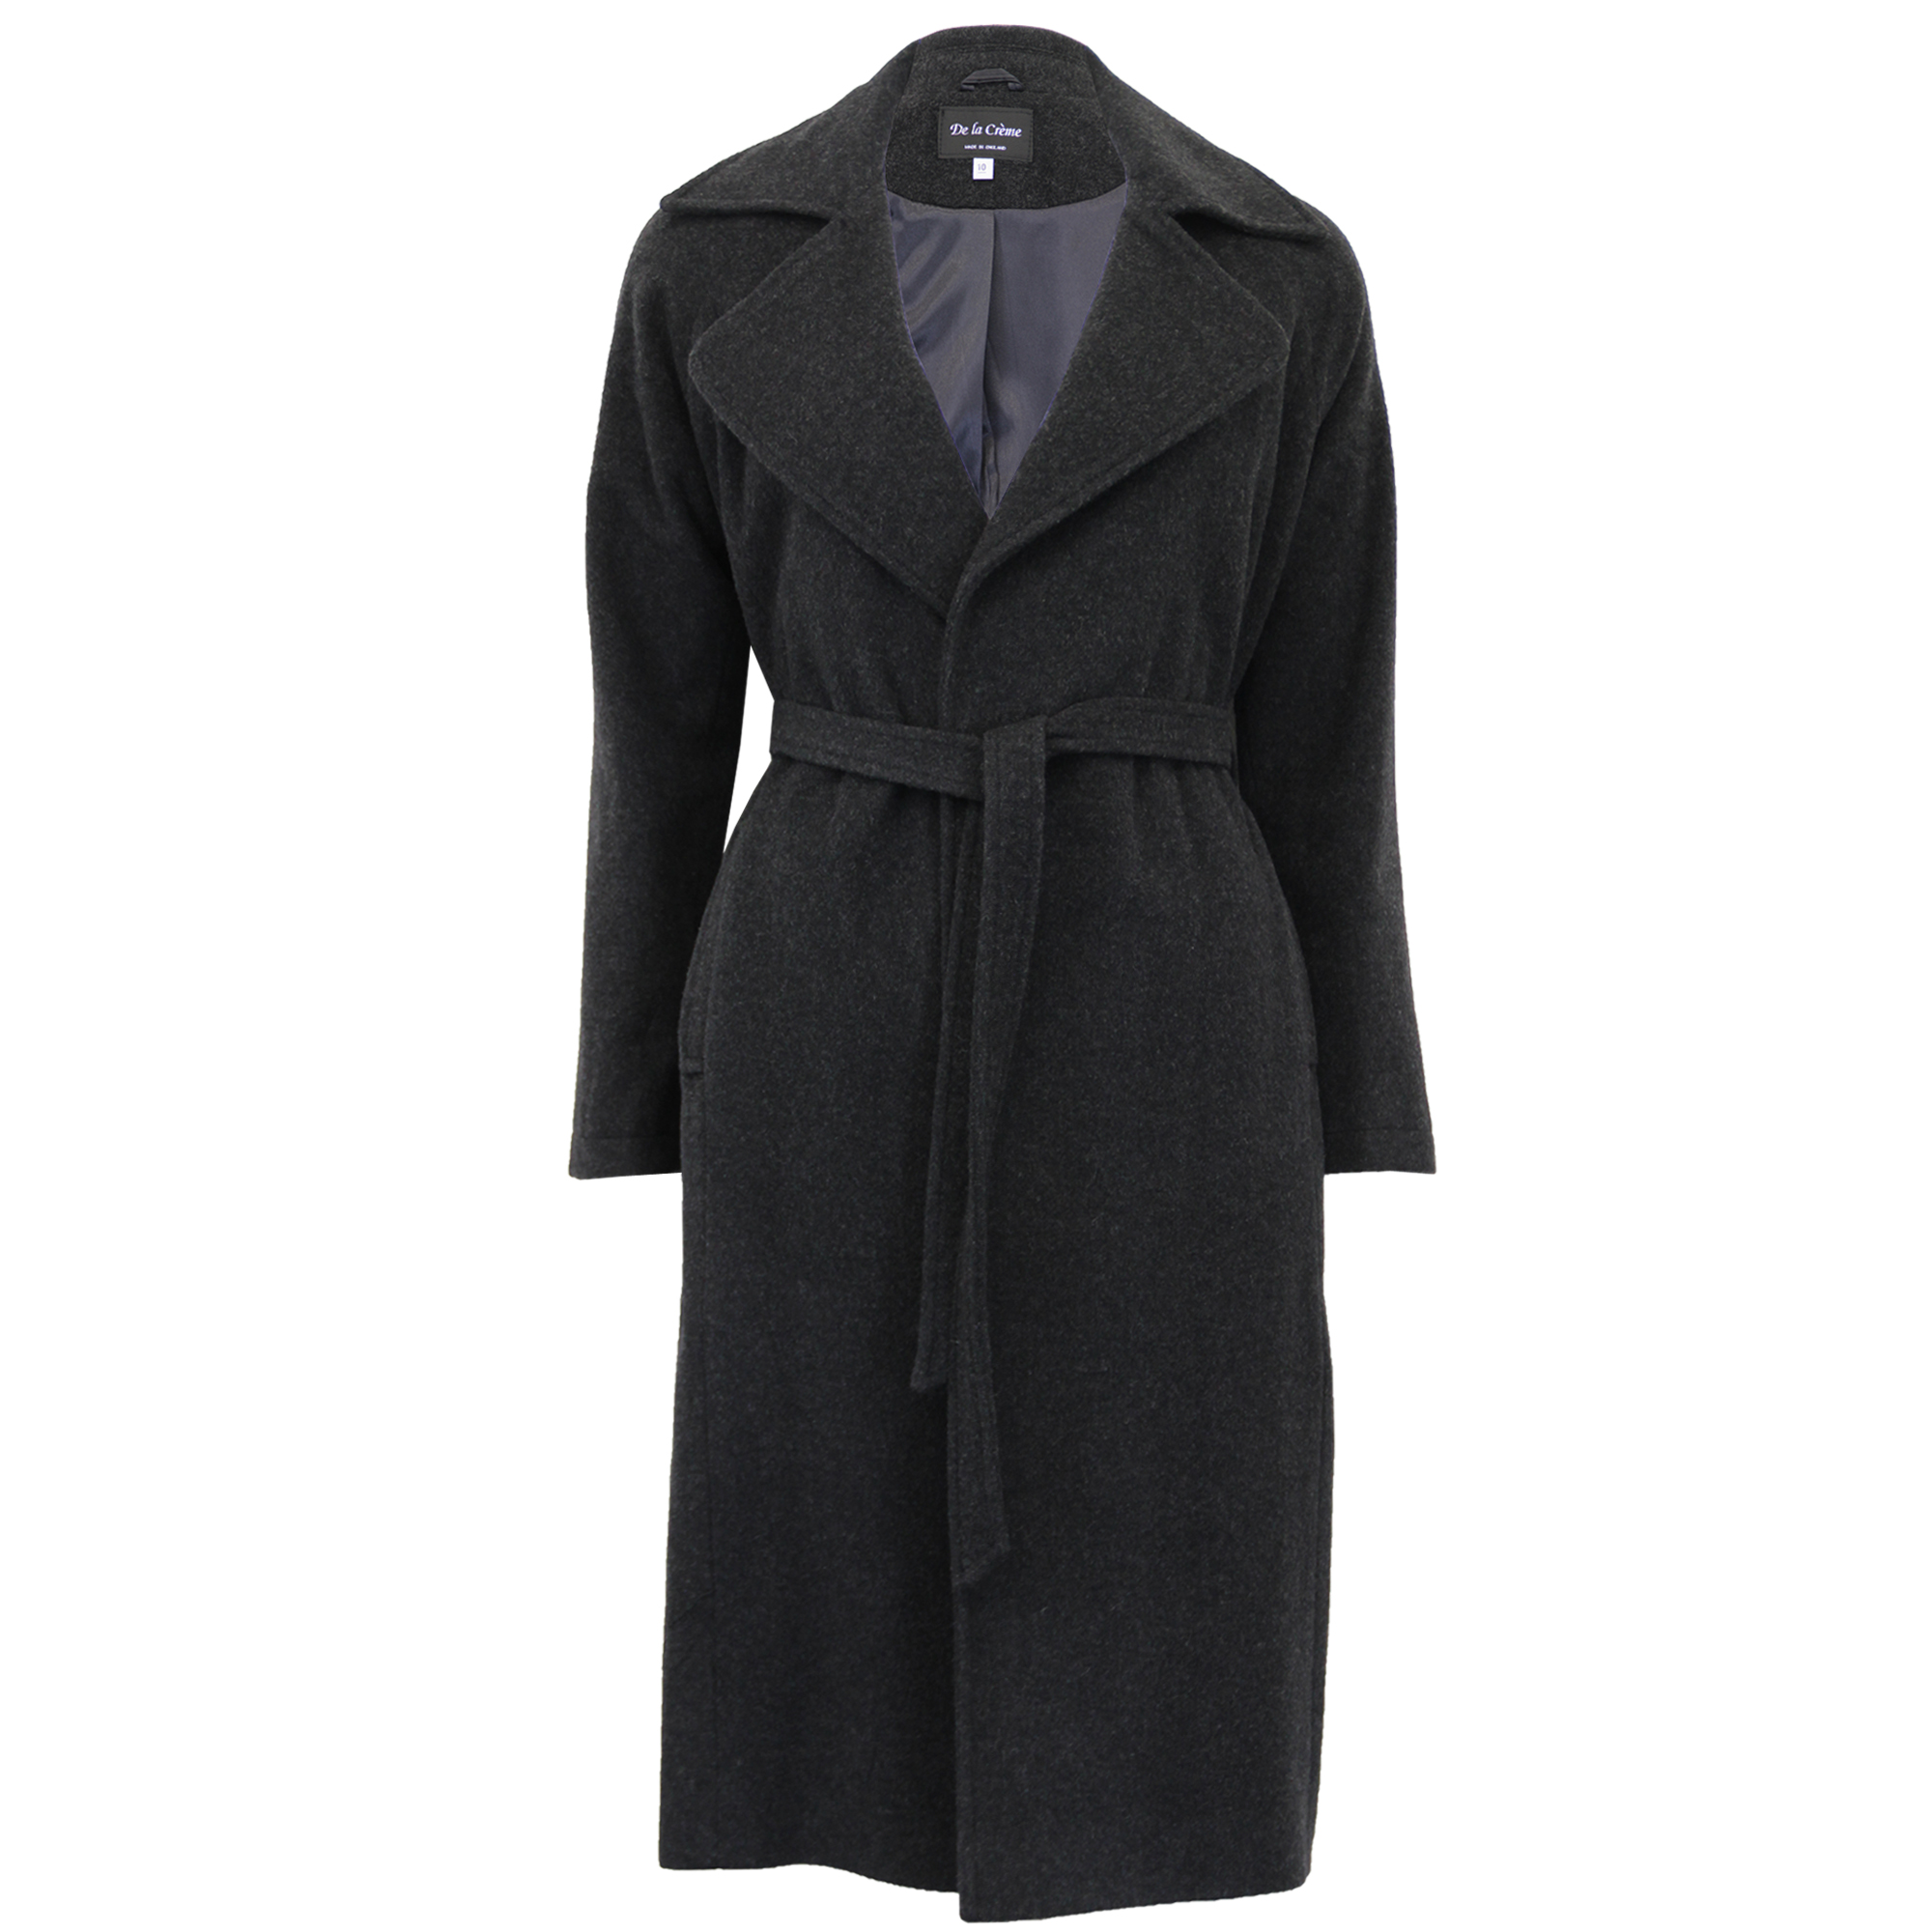 Ladies Wool Cashmere Belted Coat Womens Long Jacket Trench ...